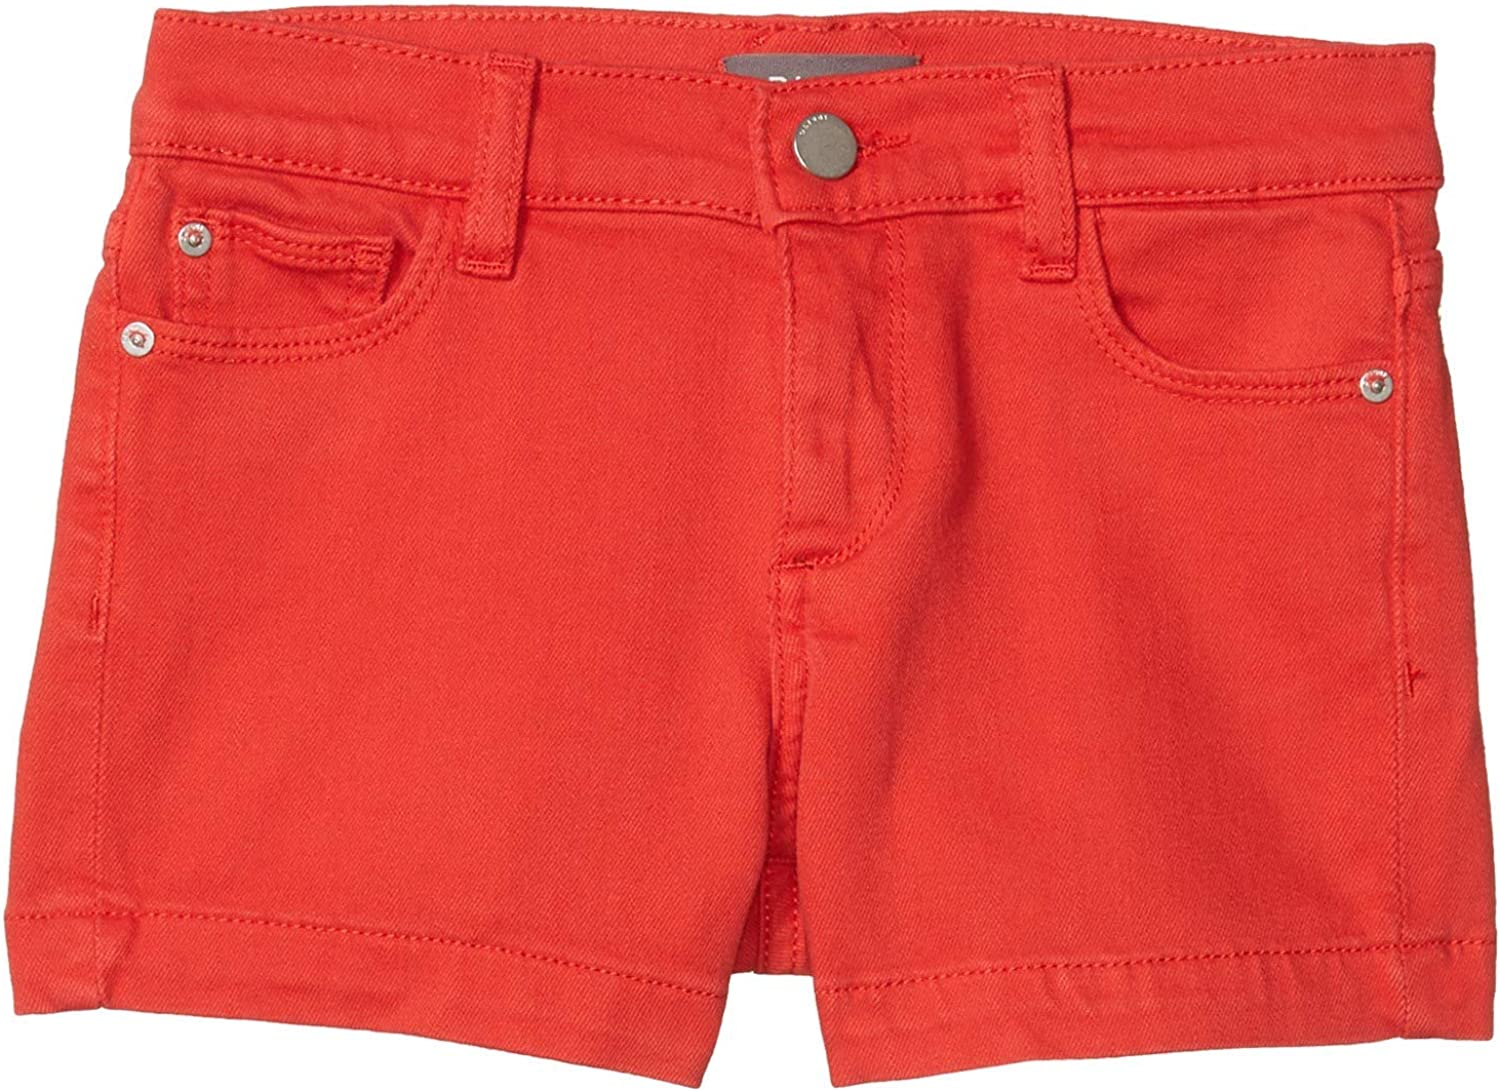 DL1961 Girls' Big Kid Lucy Cheap store mail order shopping Short Off Color Cut